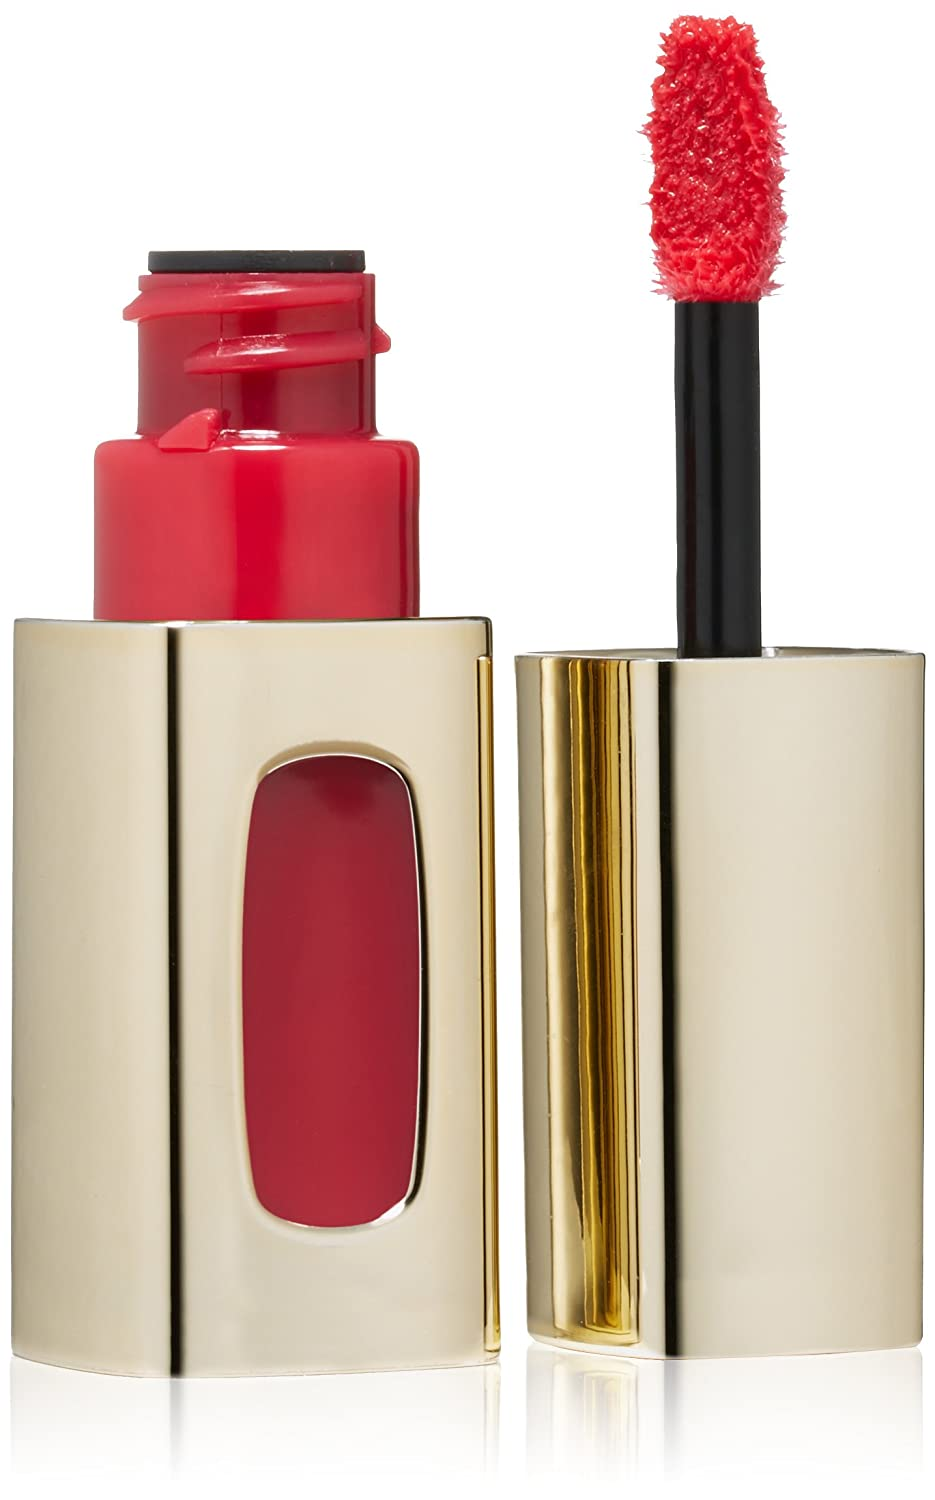 L-Oreal-Paris-Colour-Riche-Extraordinaire-Lip-Color-Rouge-Allegro-0-18-Fluid-Ounce